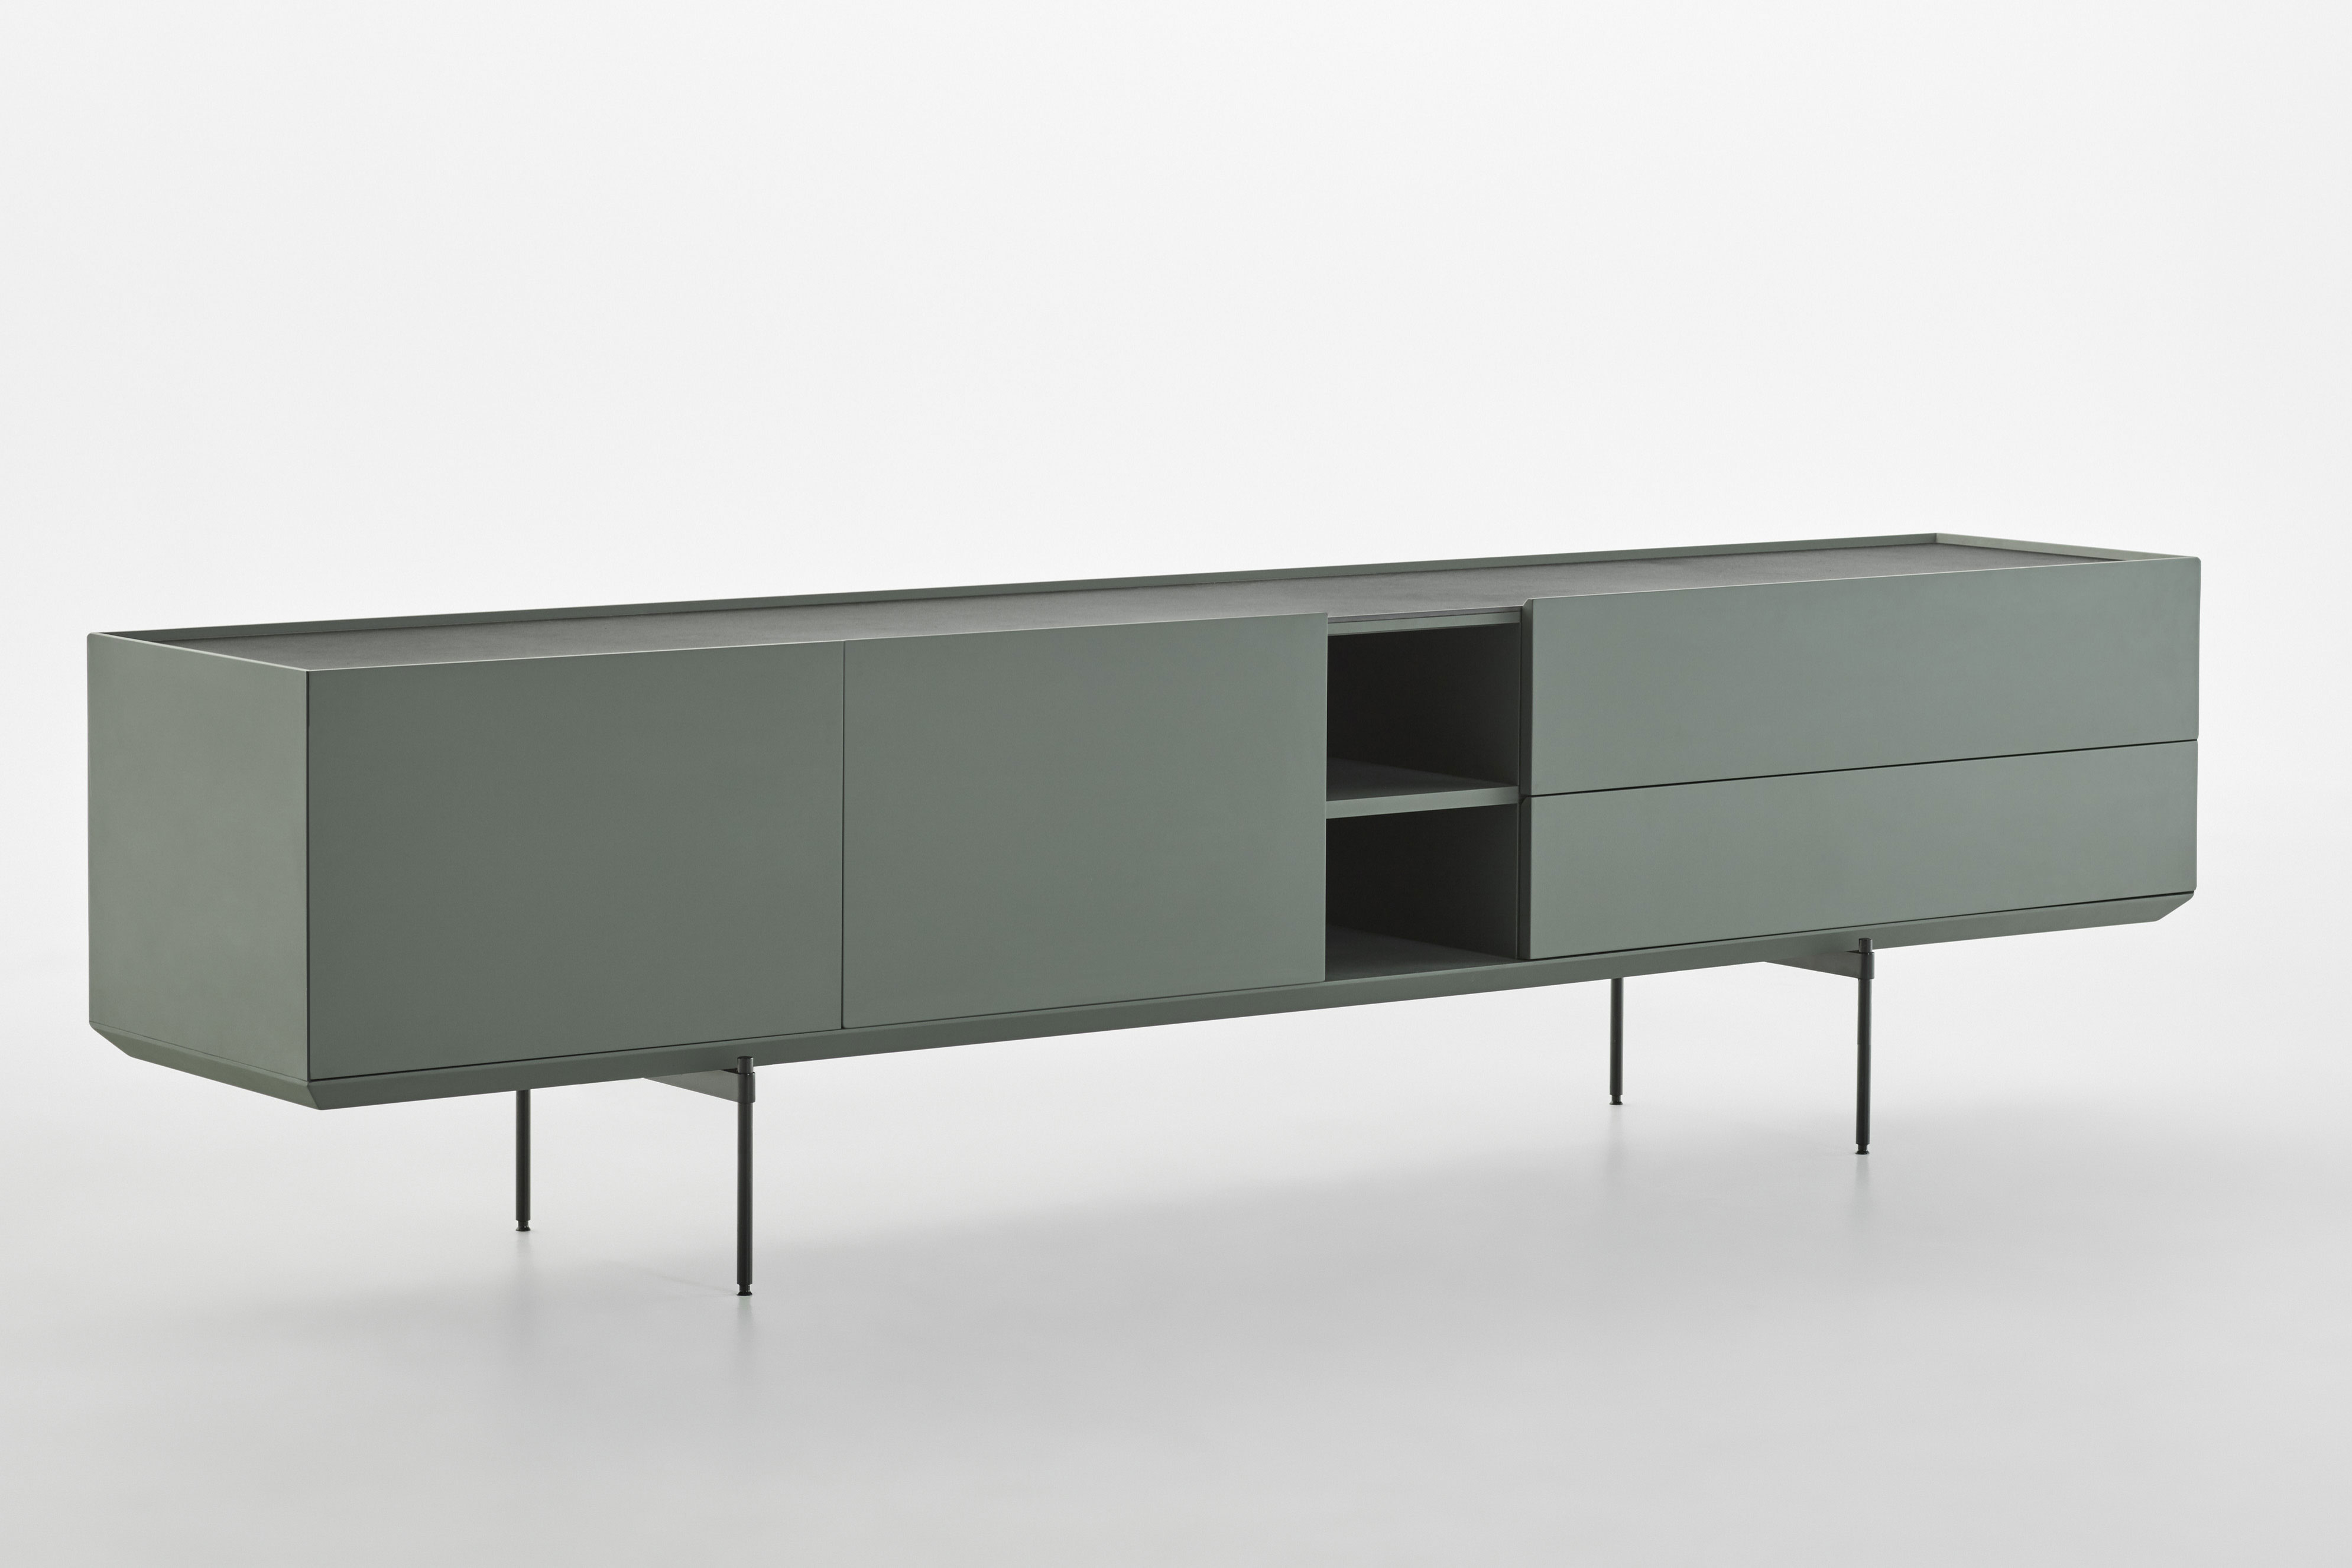 HERITAGE sideboard by La Mamba for Cármenes. Photo: Courtesy of Cármenes.